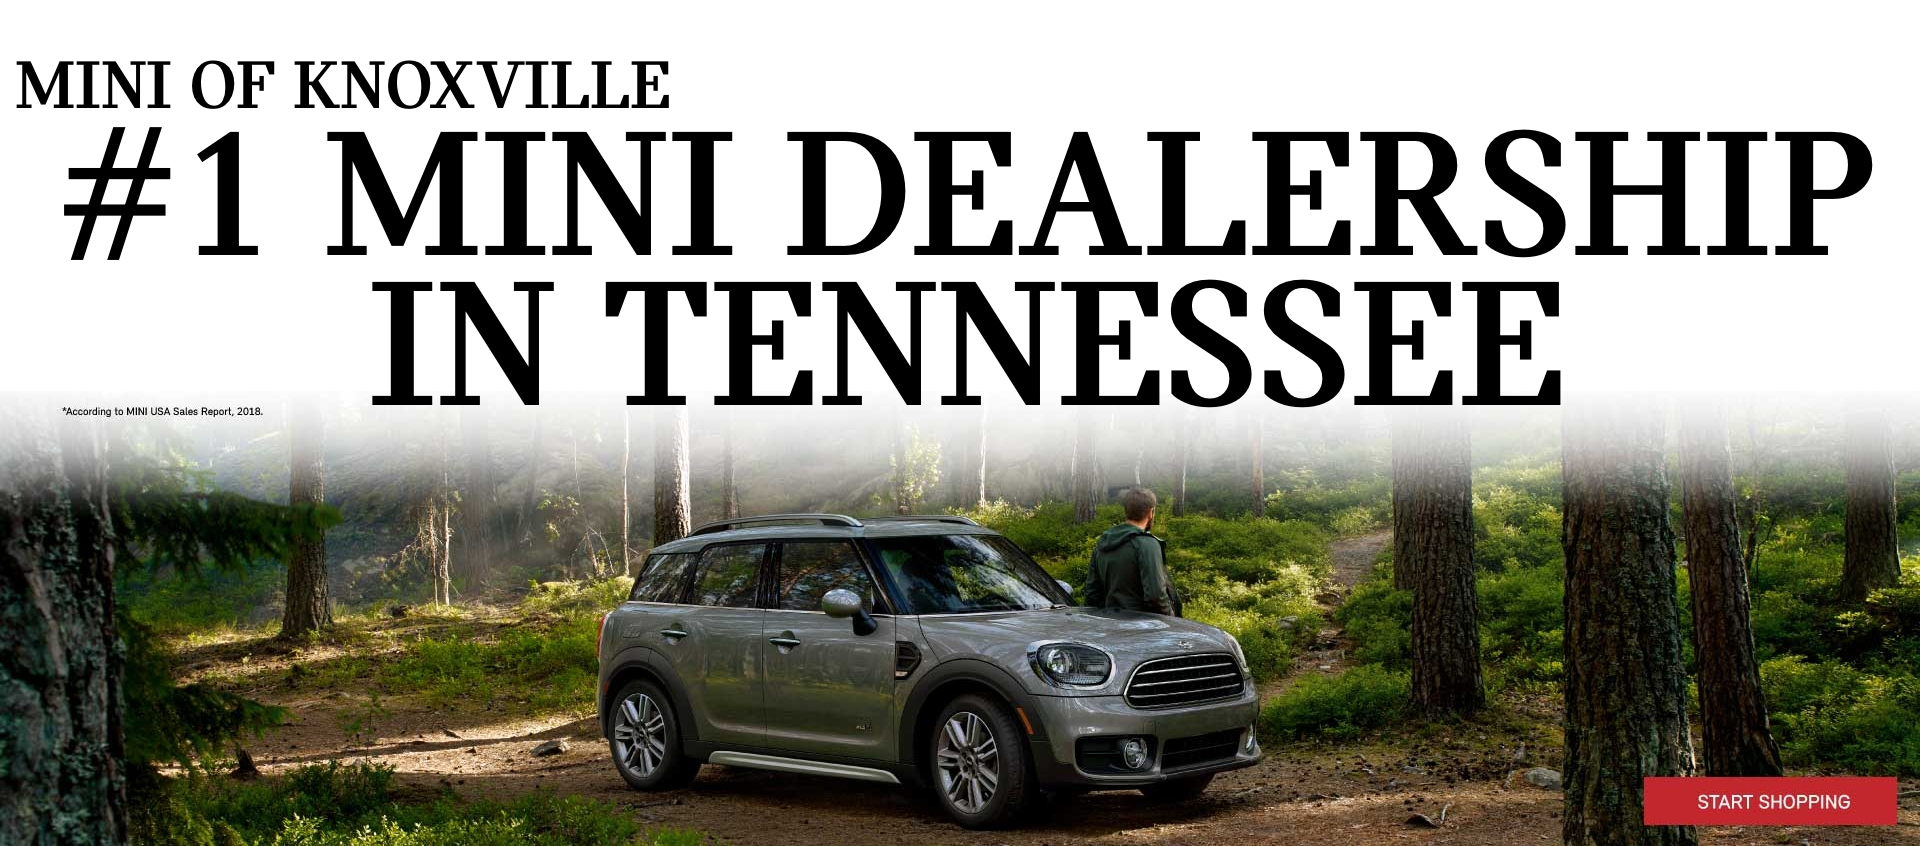 New Used Cars For Sale In Knoxville Mini Of Knoxville